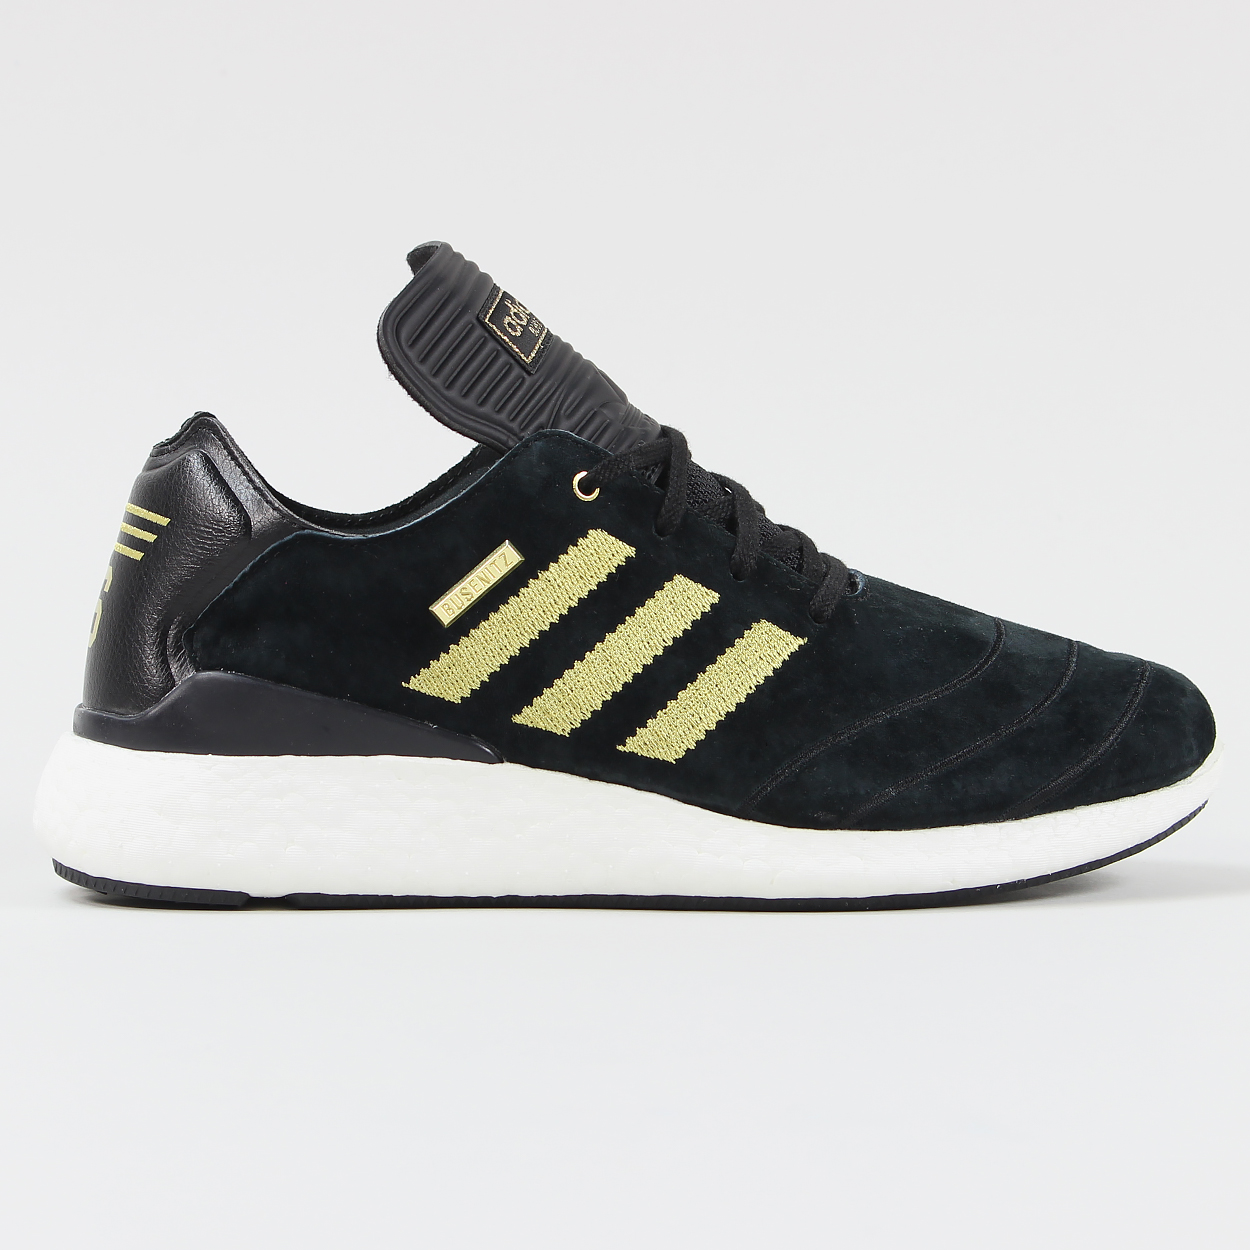 0937a48664c7e Adidas Busenitz 10 Year Anniversary Pure Boost Shoes Black Gold £75.00